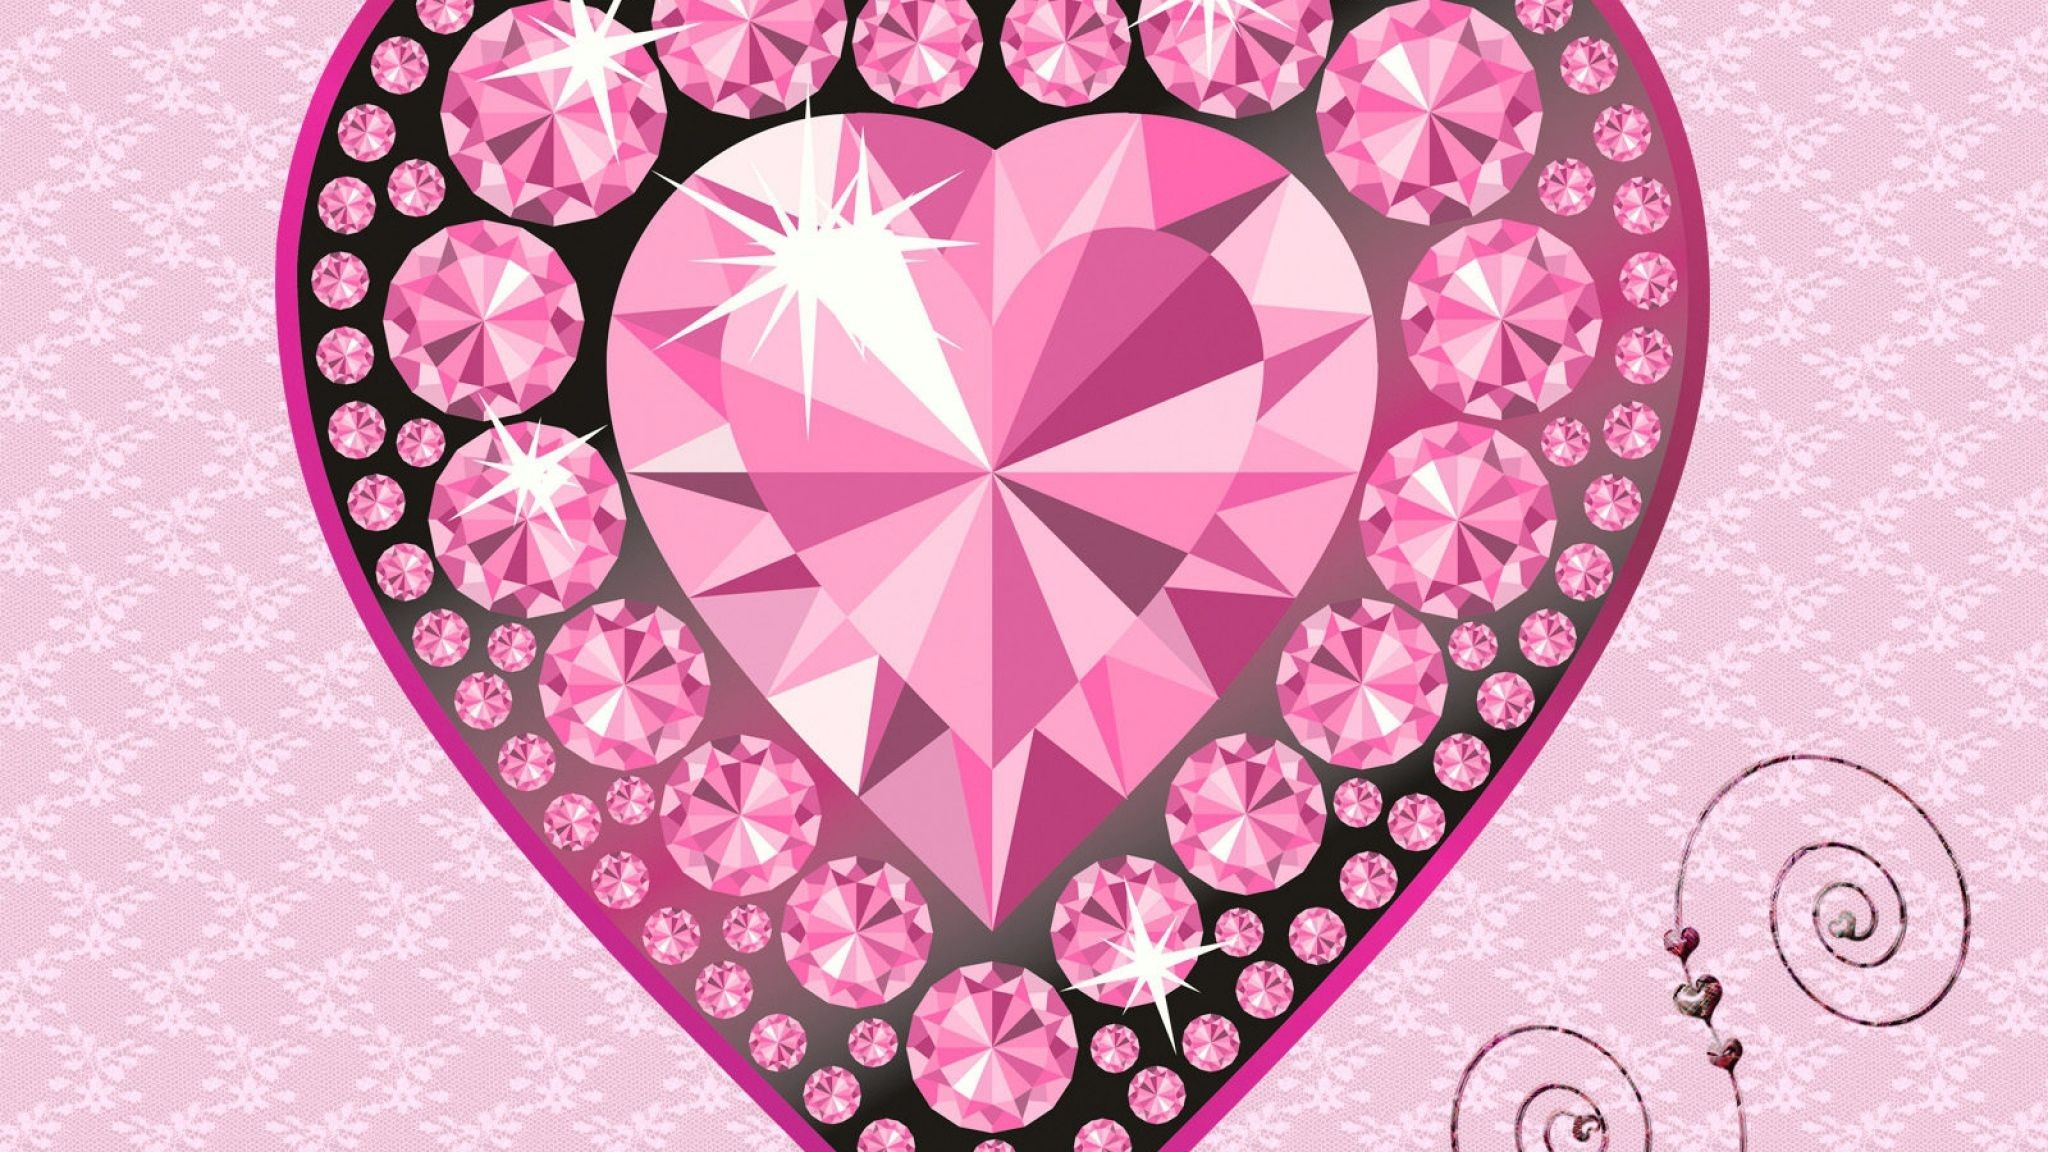 Res: 2048x1152, Widescreen-Diamond-Wallpaper-Cool-Image-Pink-Picture.jpg